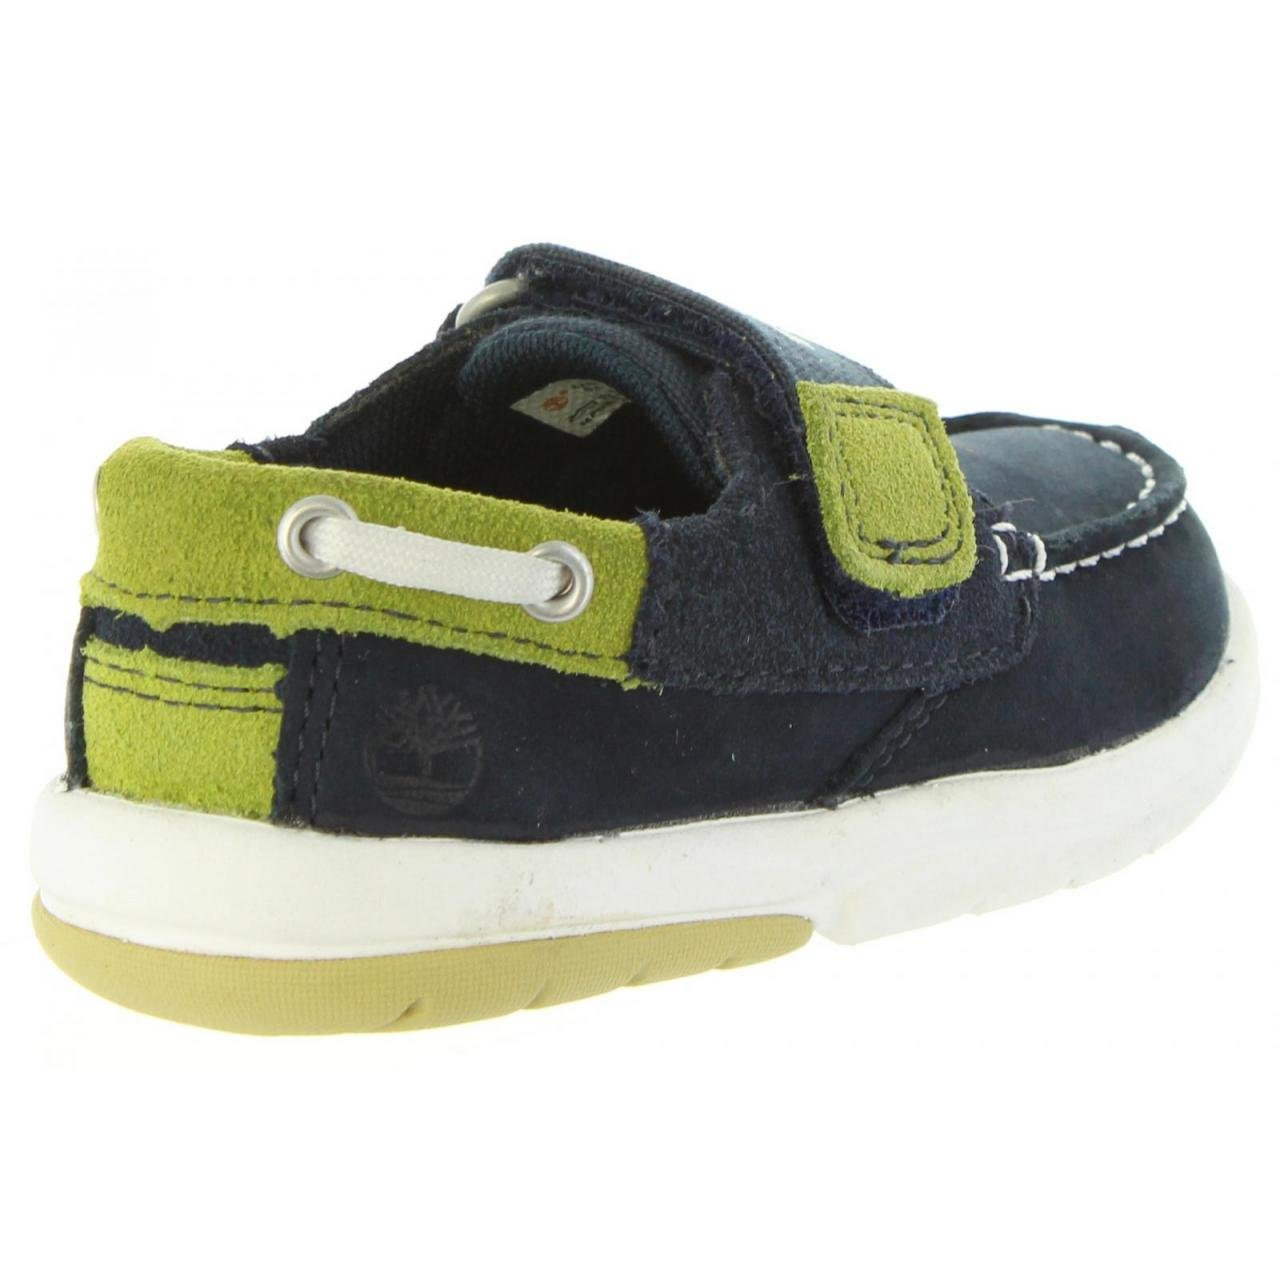 Timberland Unisex Babies/' Toddle Tracks Loafers Navy Blue